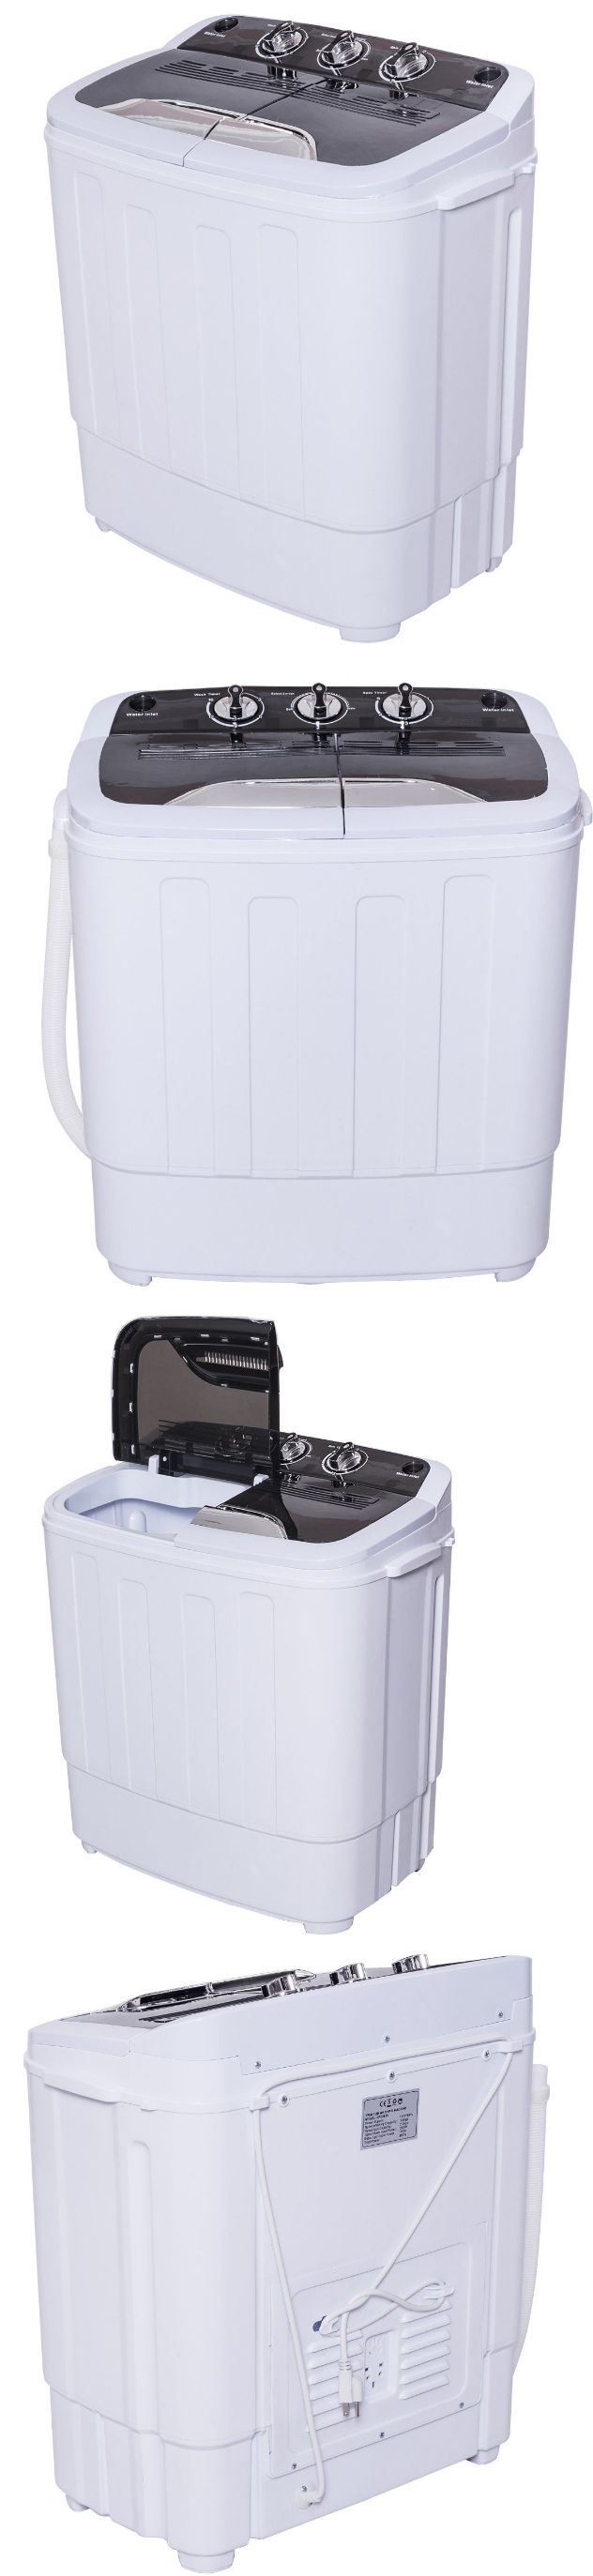 Washer Dryer Combinations and Sets 71257: Portable Compact Mini Twin on mobile washer and dryer, mobile home kitchens, mobile home patios, mobile home fireplace, mobile home sink, mobile home bathrooms, mobile home ovens,